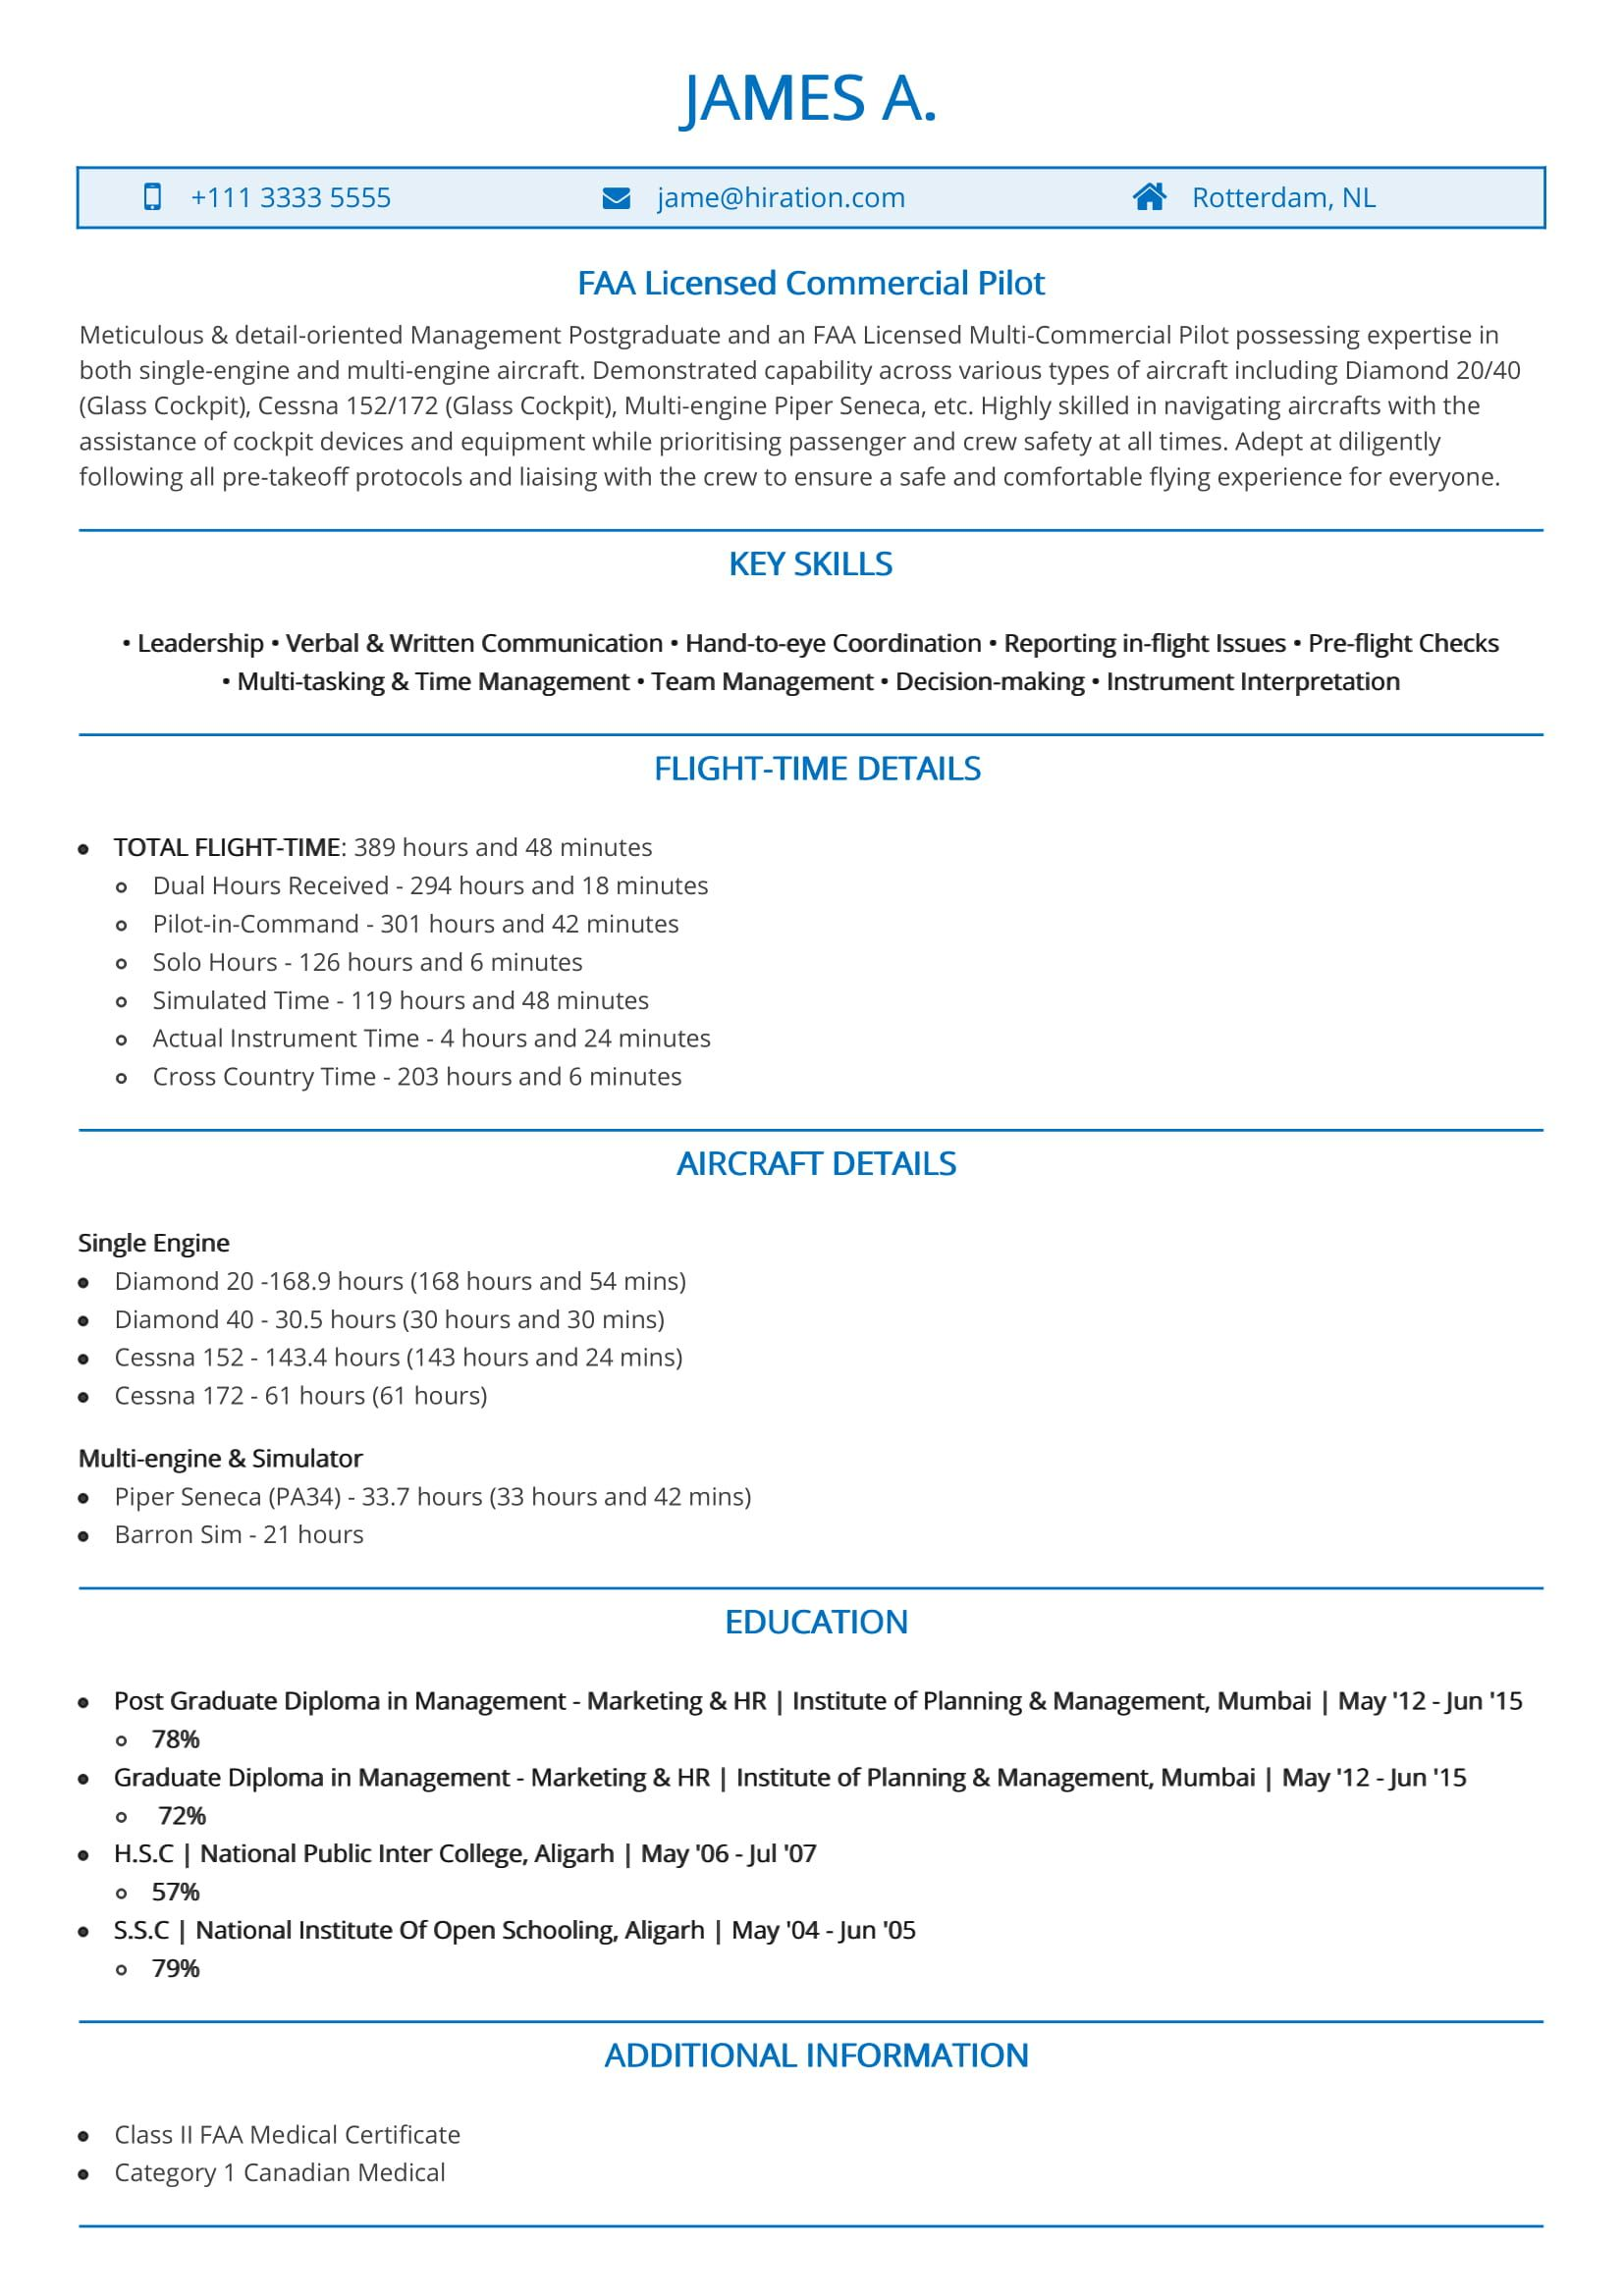 resume with 1 job experience